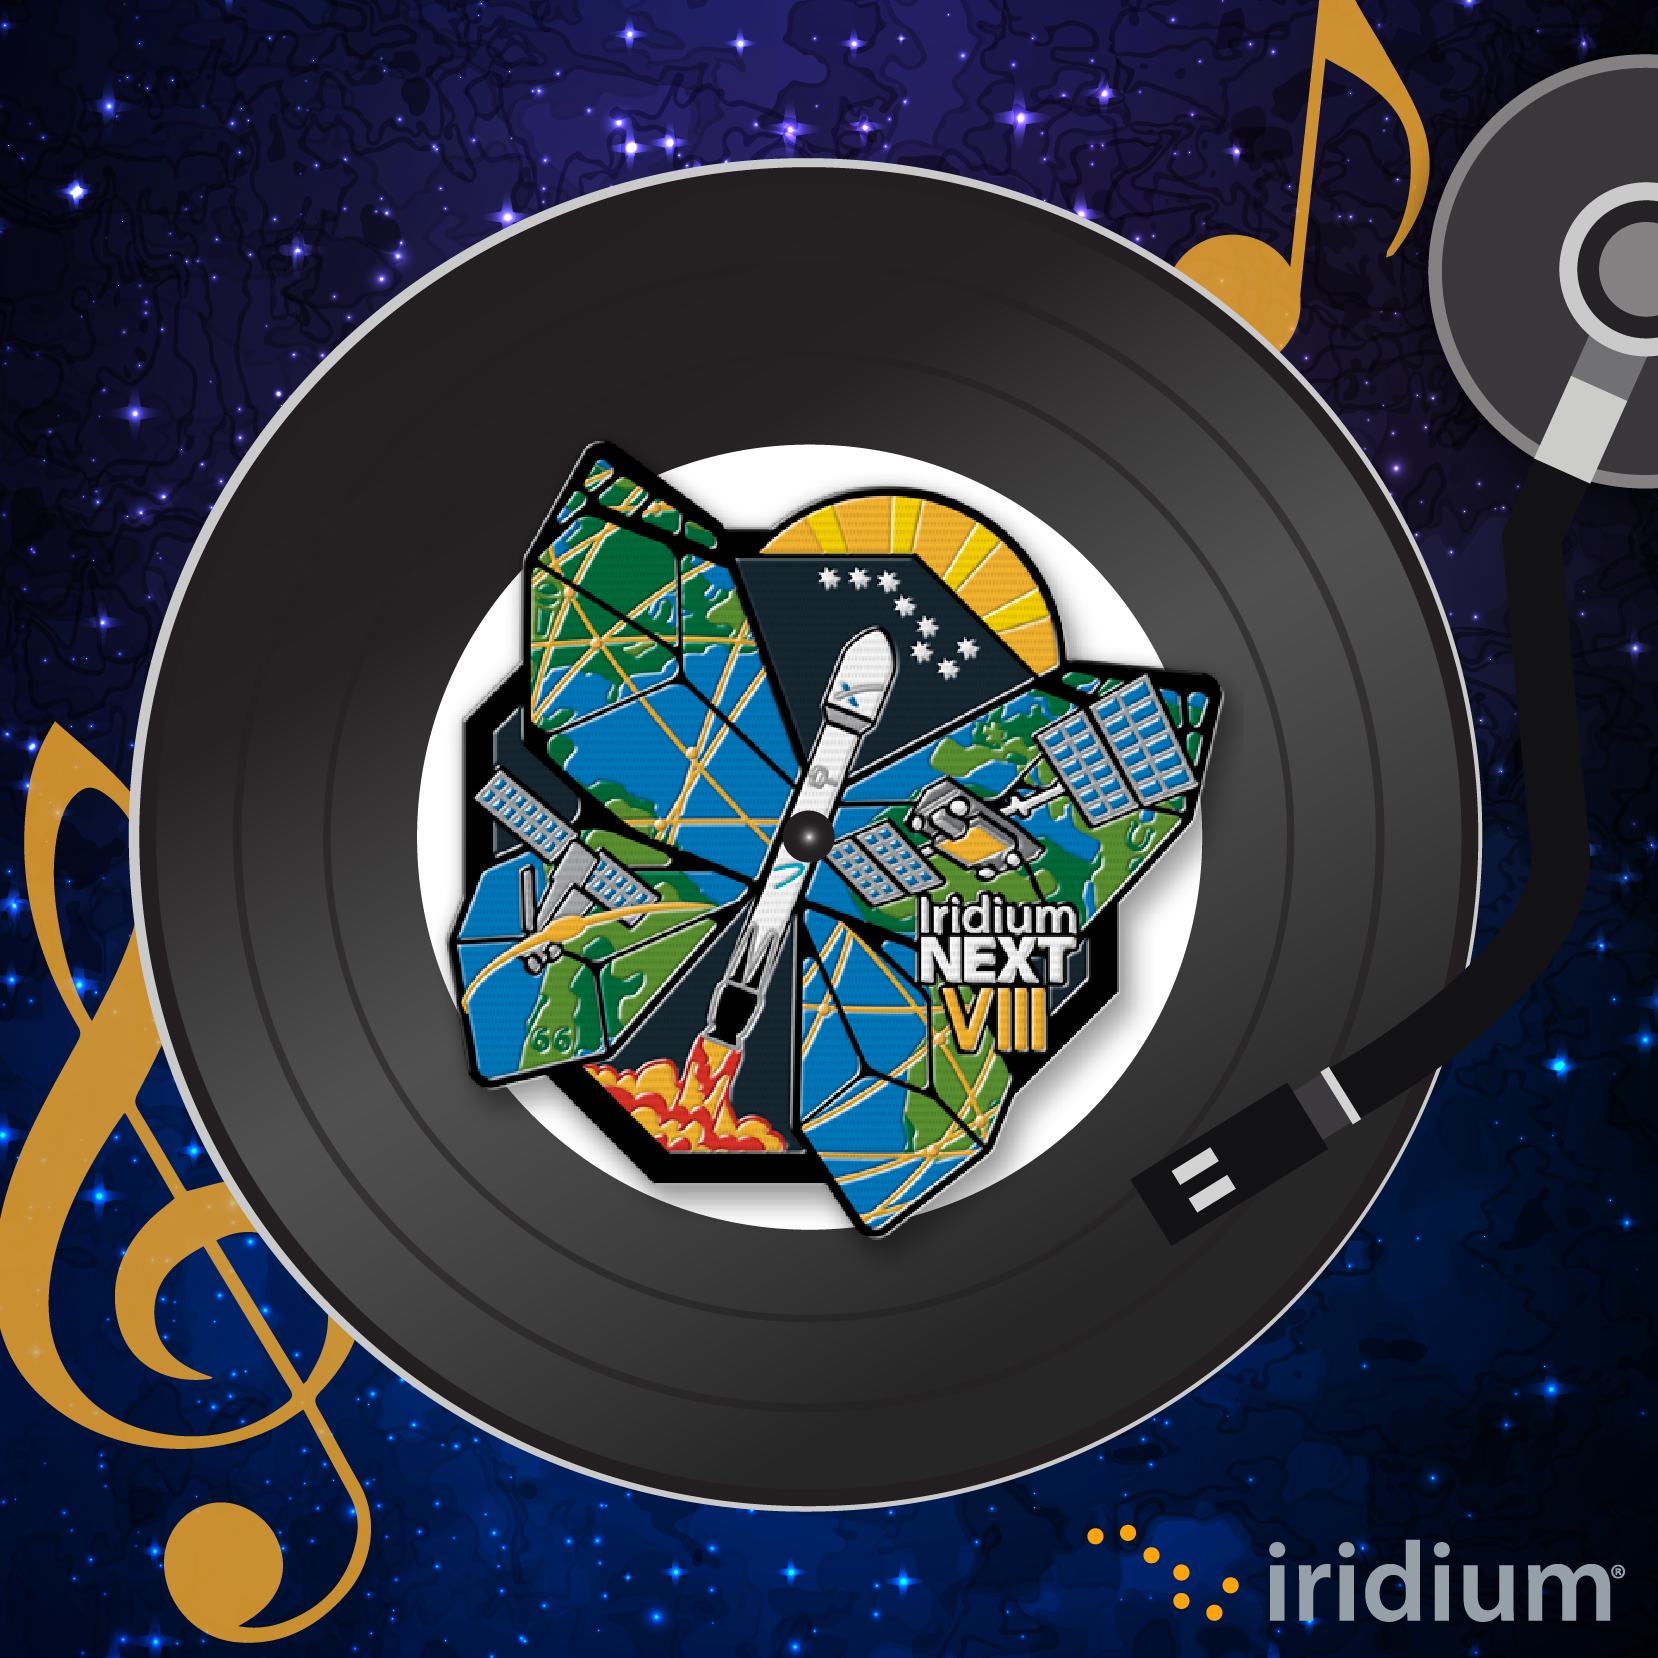 Graphic for Iridium NEXT Launch 8 Spotify playlist, showing the launch patch imprinted on a vinyl record in a player.